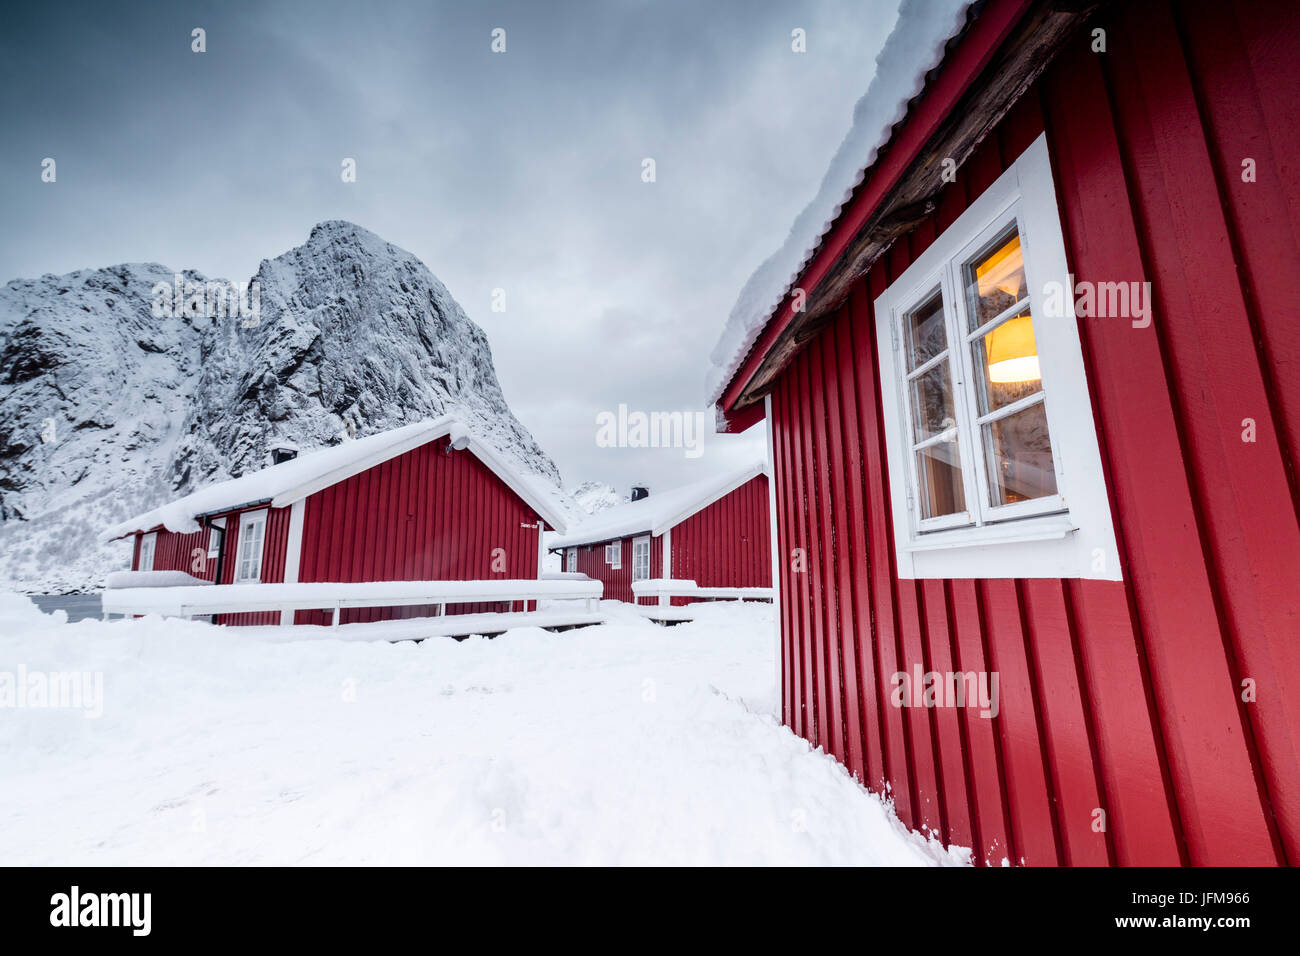 Clouds on the typical red houses of fishermen called Rorbu surrounded by snowy Hamnøy Lofoten Islands Northern - Stock Image